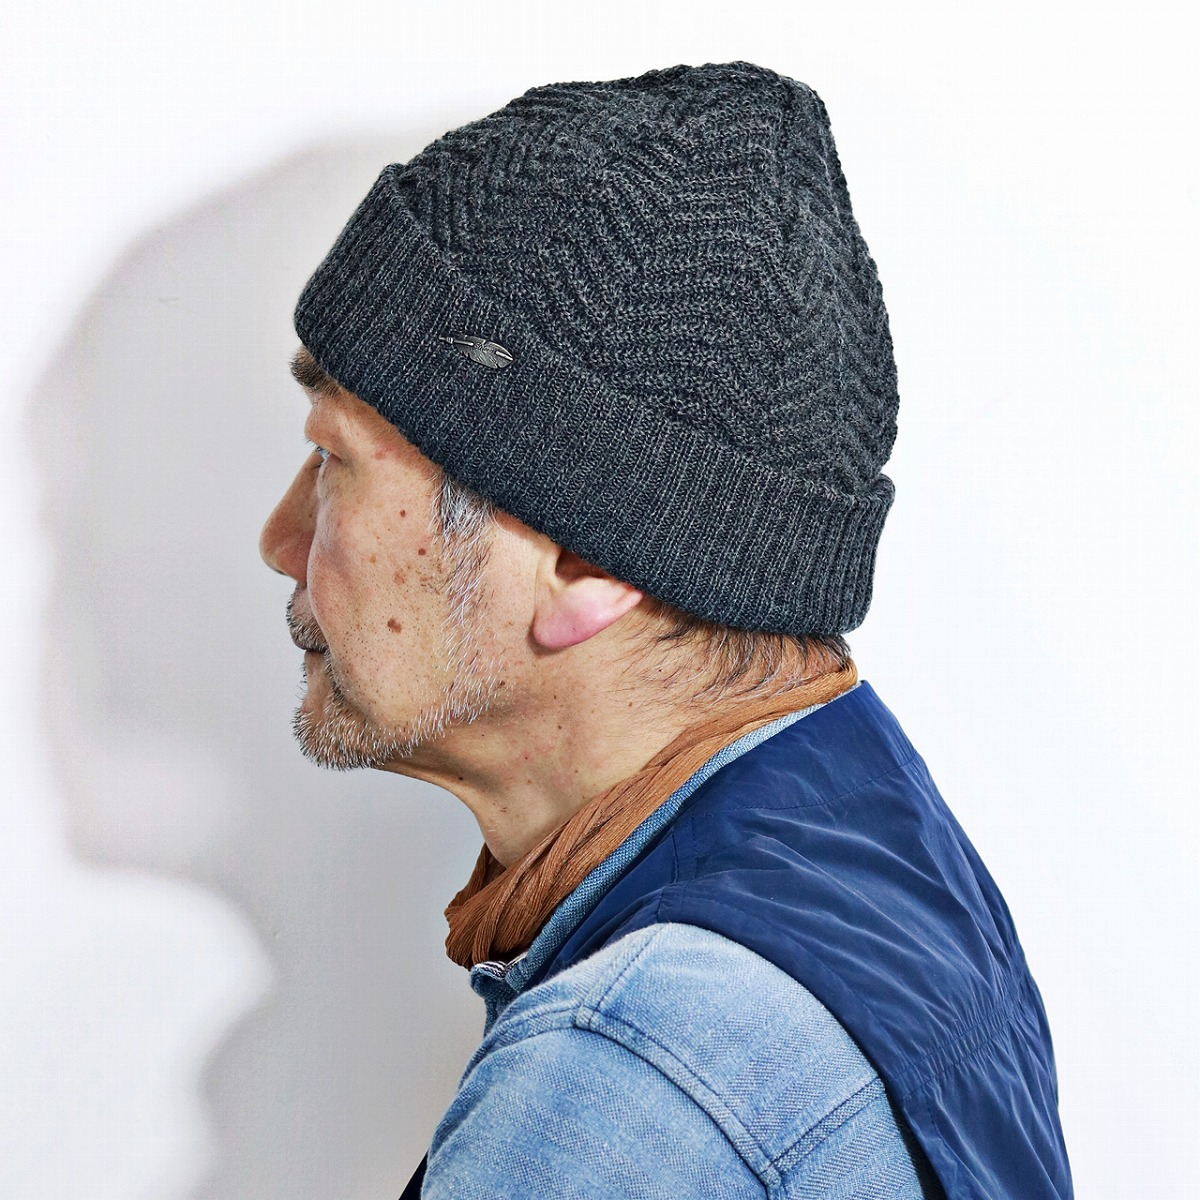 f15149453b ELEHELM HAT STORE  ニットワッチ STETSON herringbone wool fabric hat knit hat  gentleman men gap Dis Stetson cold protection charcoal in the fall and  winter ...